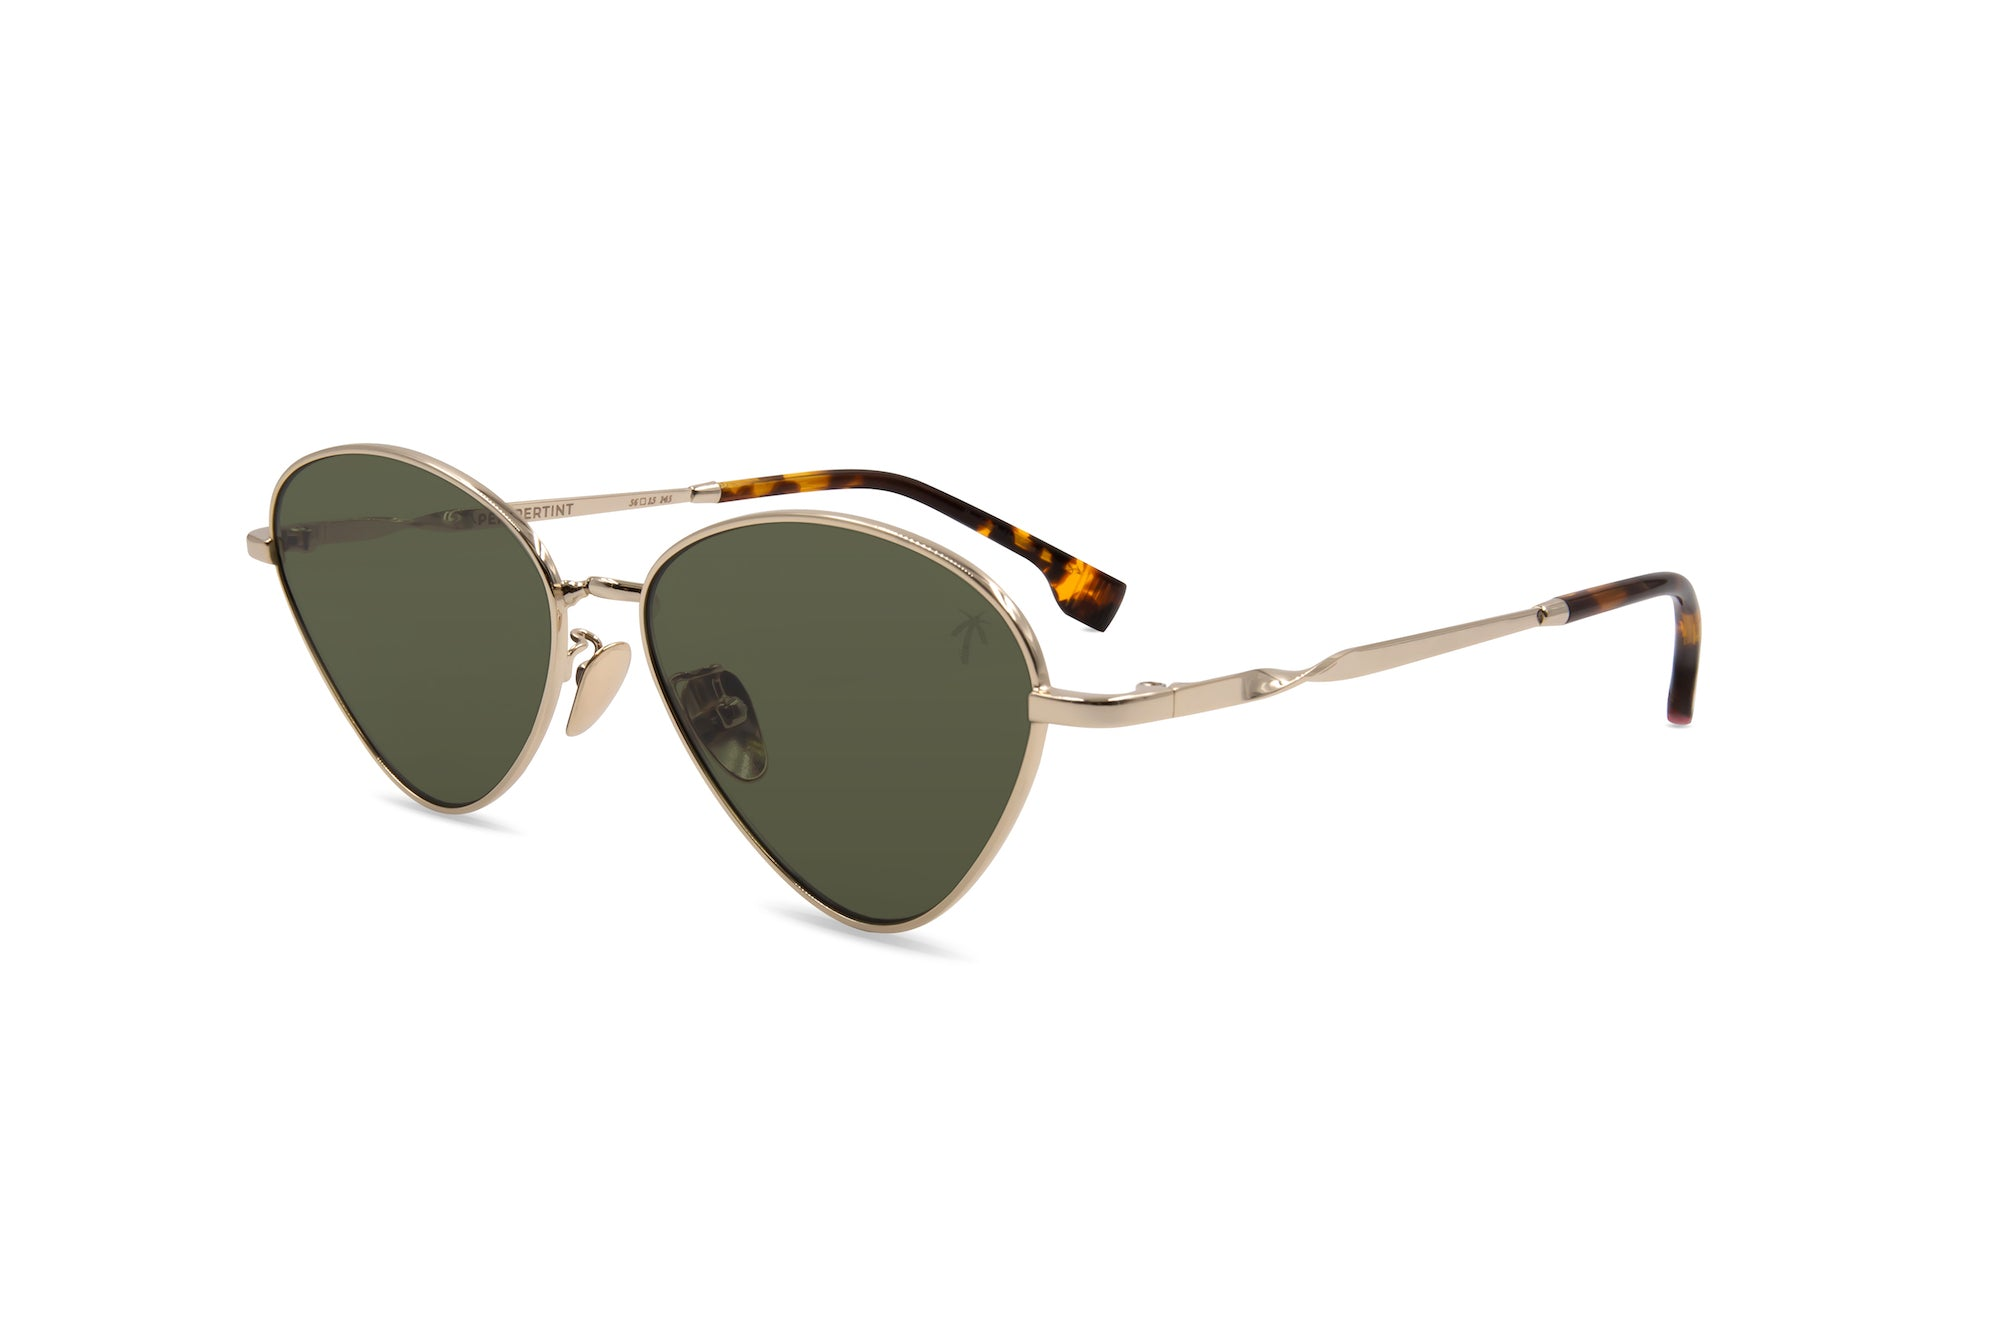 Olive in Green - Peppertint - Designer sunglasses